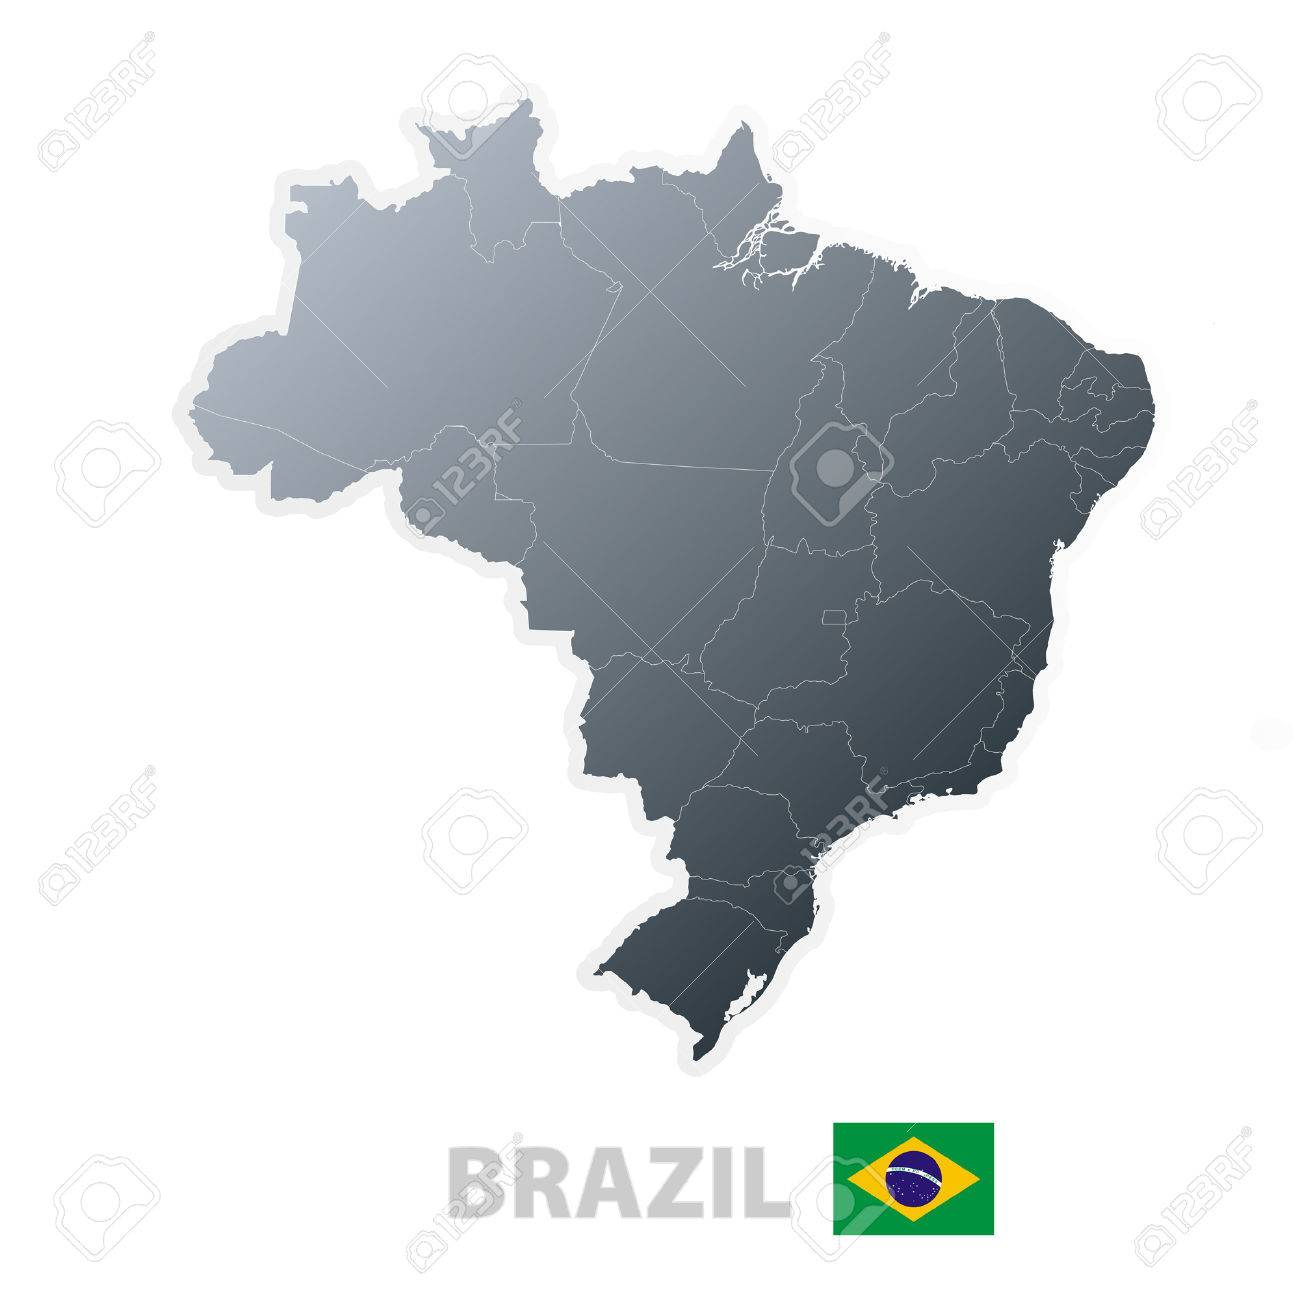 Vector illustration of the map with regions or states and the official flag of Brazil. - 3482369